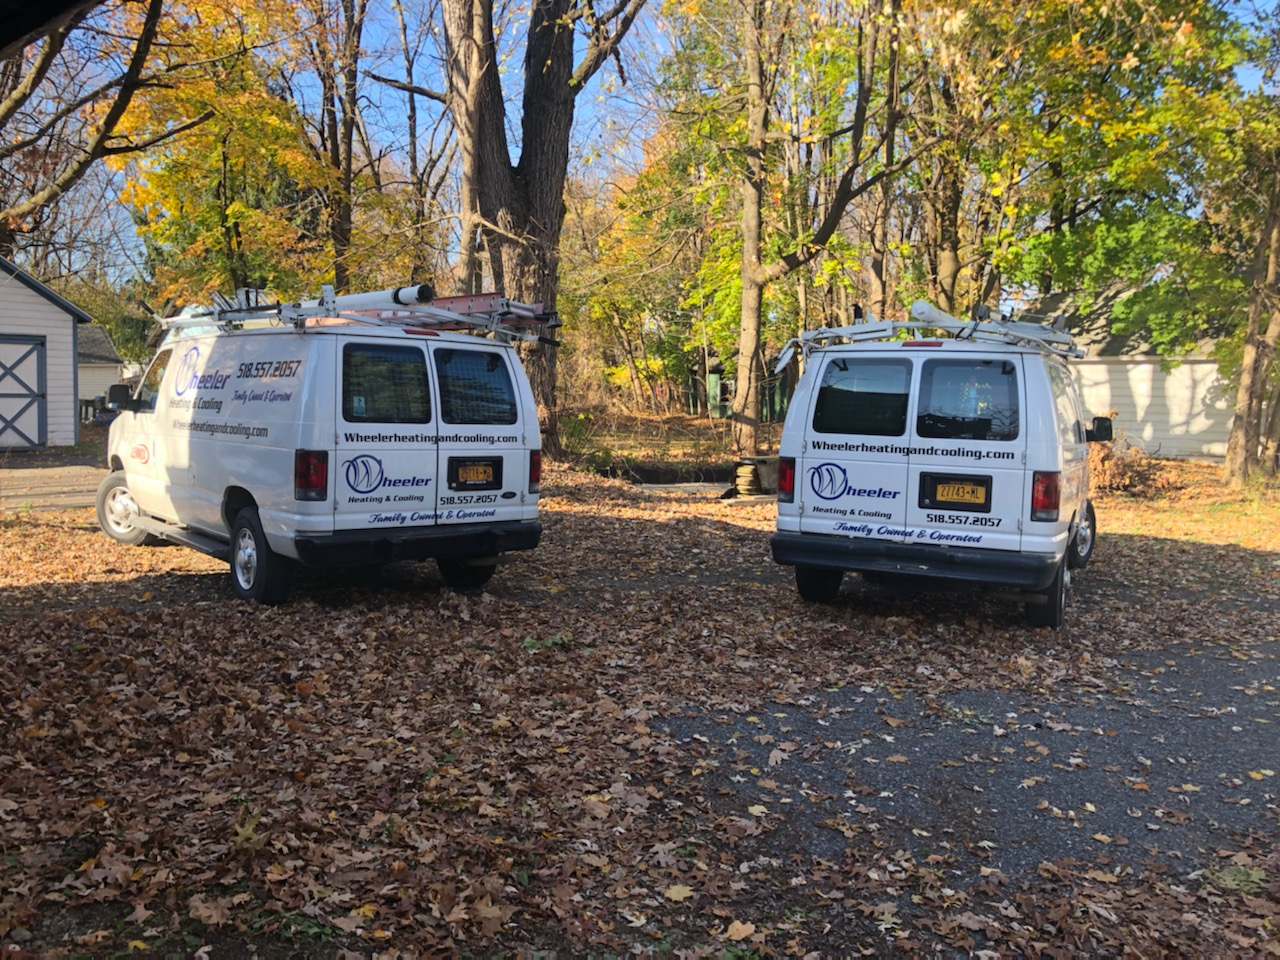 Two Wheeler Heating and Cooling HVAC Services vans - Schenectady, NY